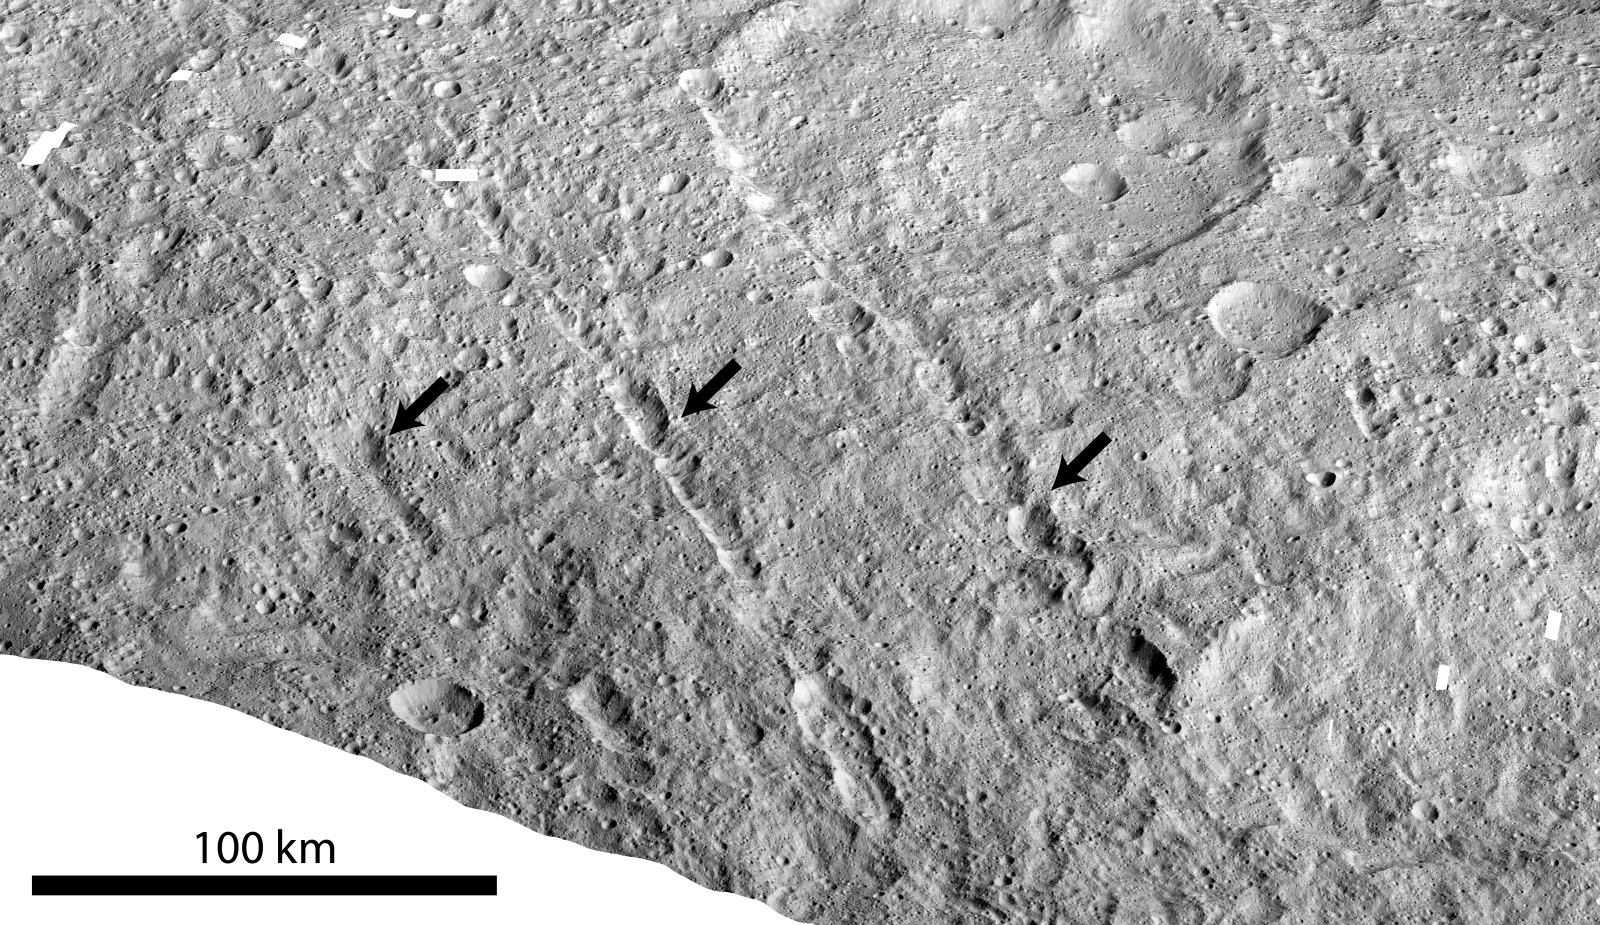 Pit chains on dwarf planet Ceres called Samhain Catenae